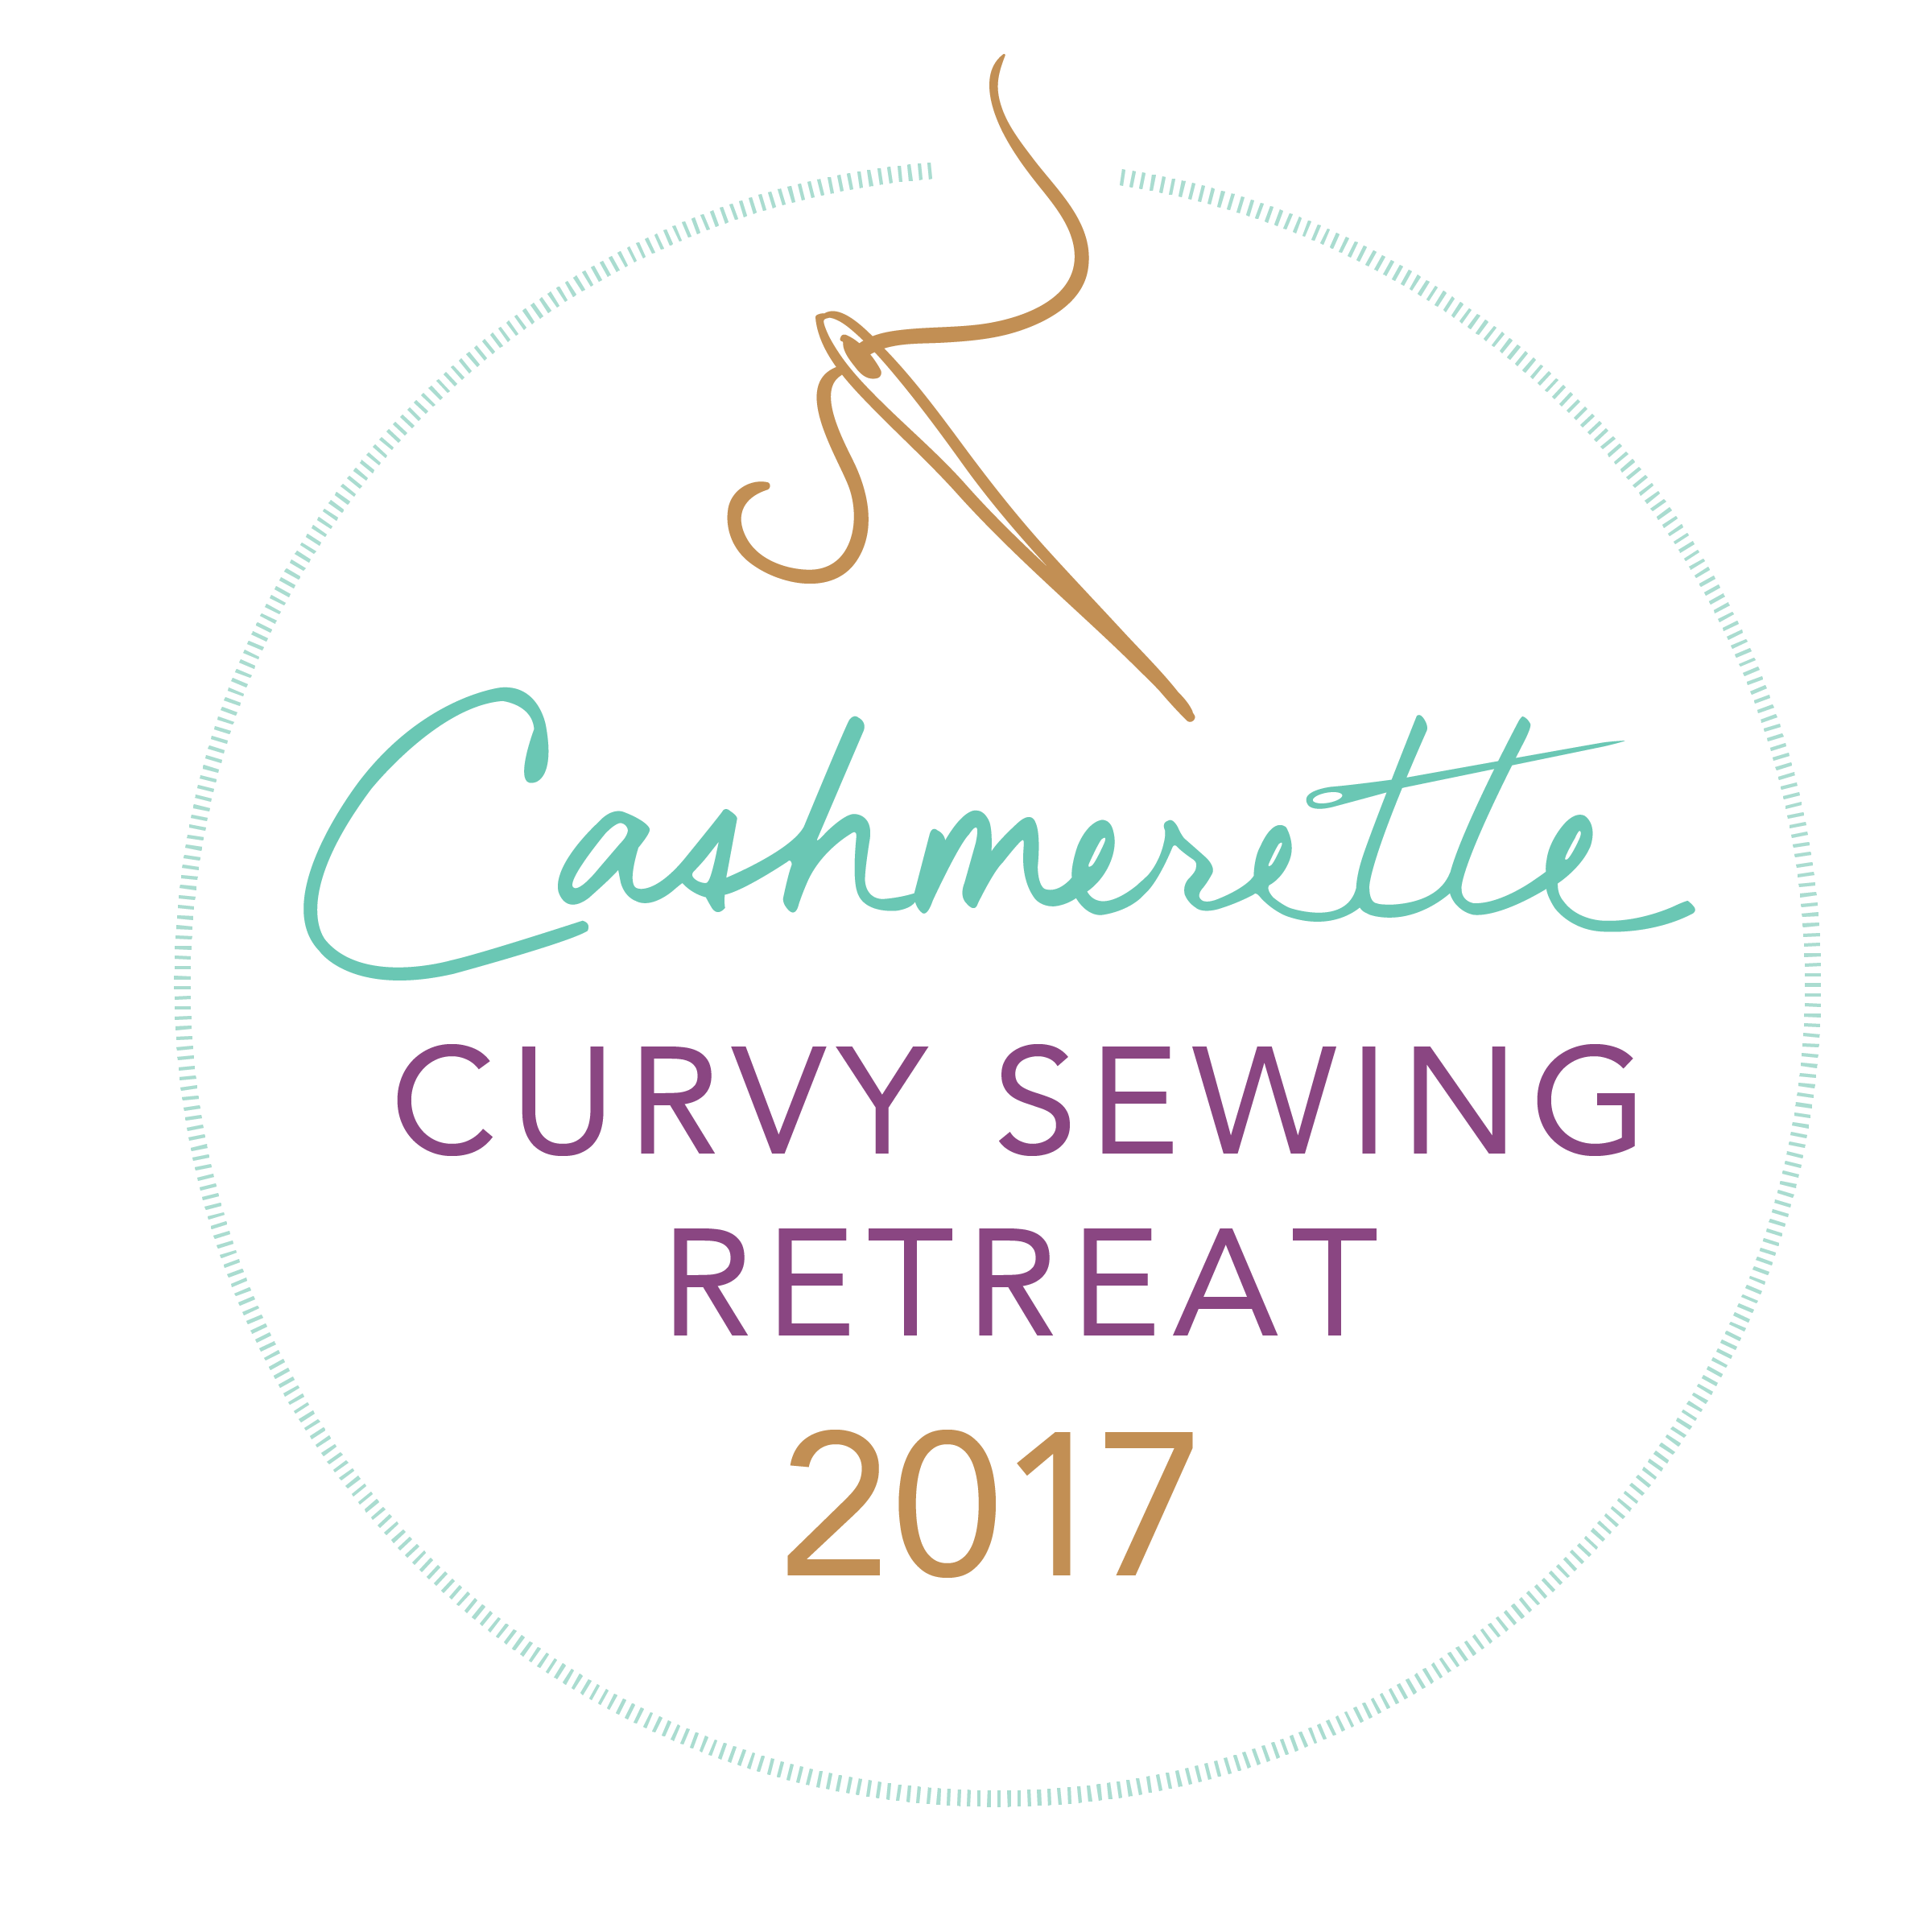 Cashmerette Curvy Sewing Retreat